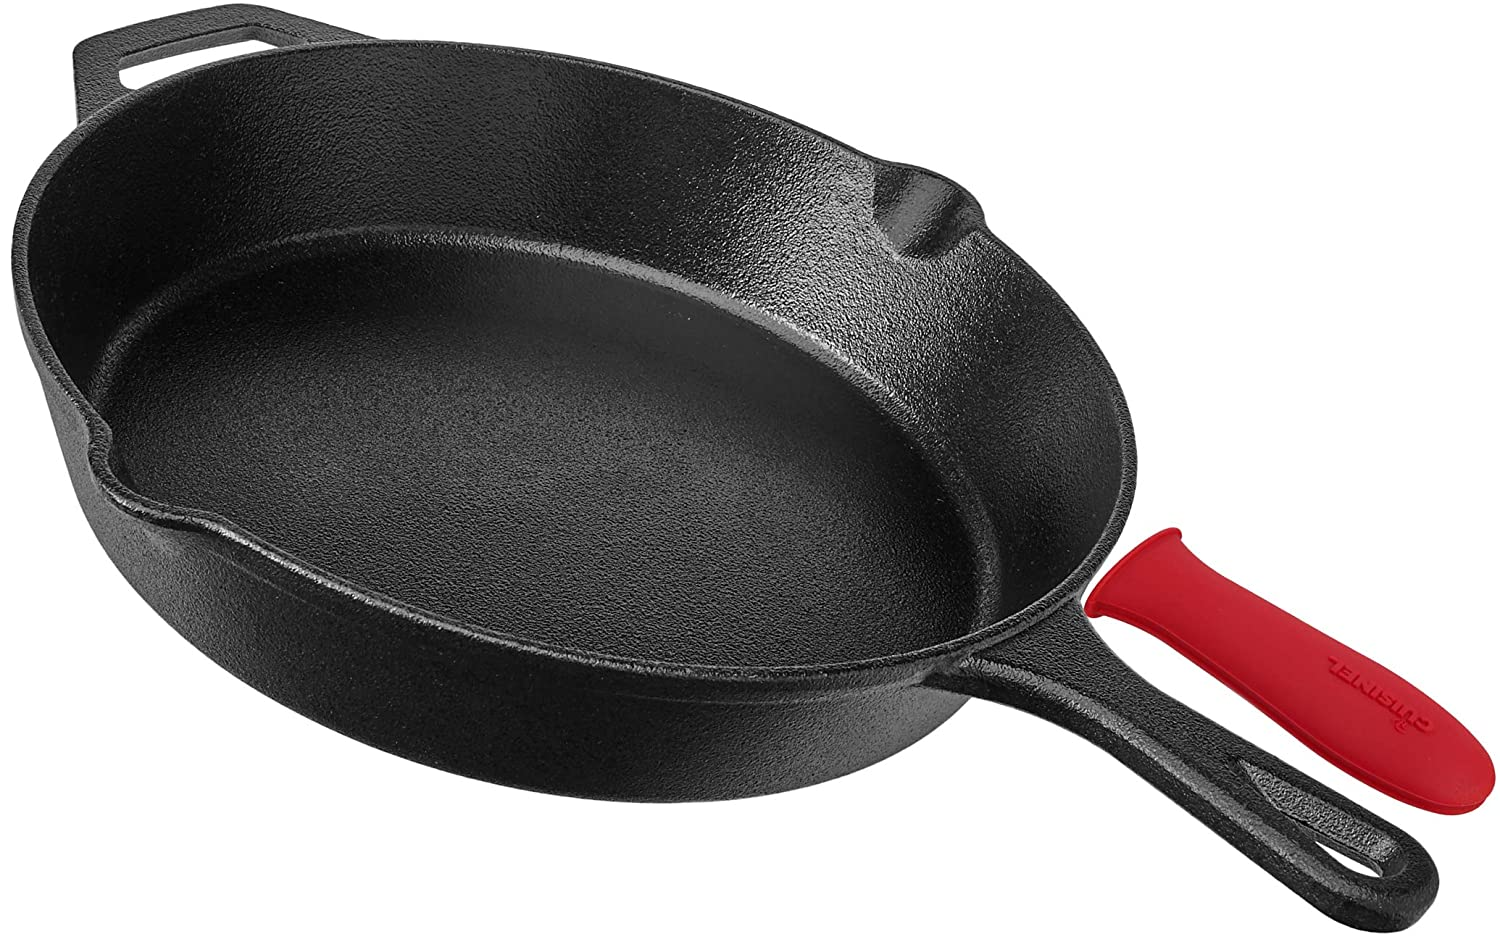 Pre Seasoned Cast Iron Skillet 12 Inch W Handle Cover Oven Safe Cookware Heat Resistant Holder Indoor And Outdoor Use Grill Stovetop